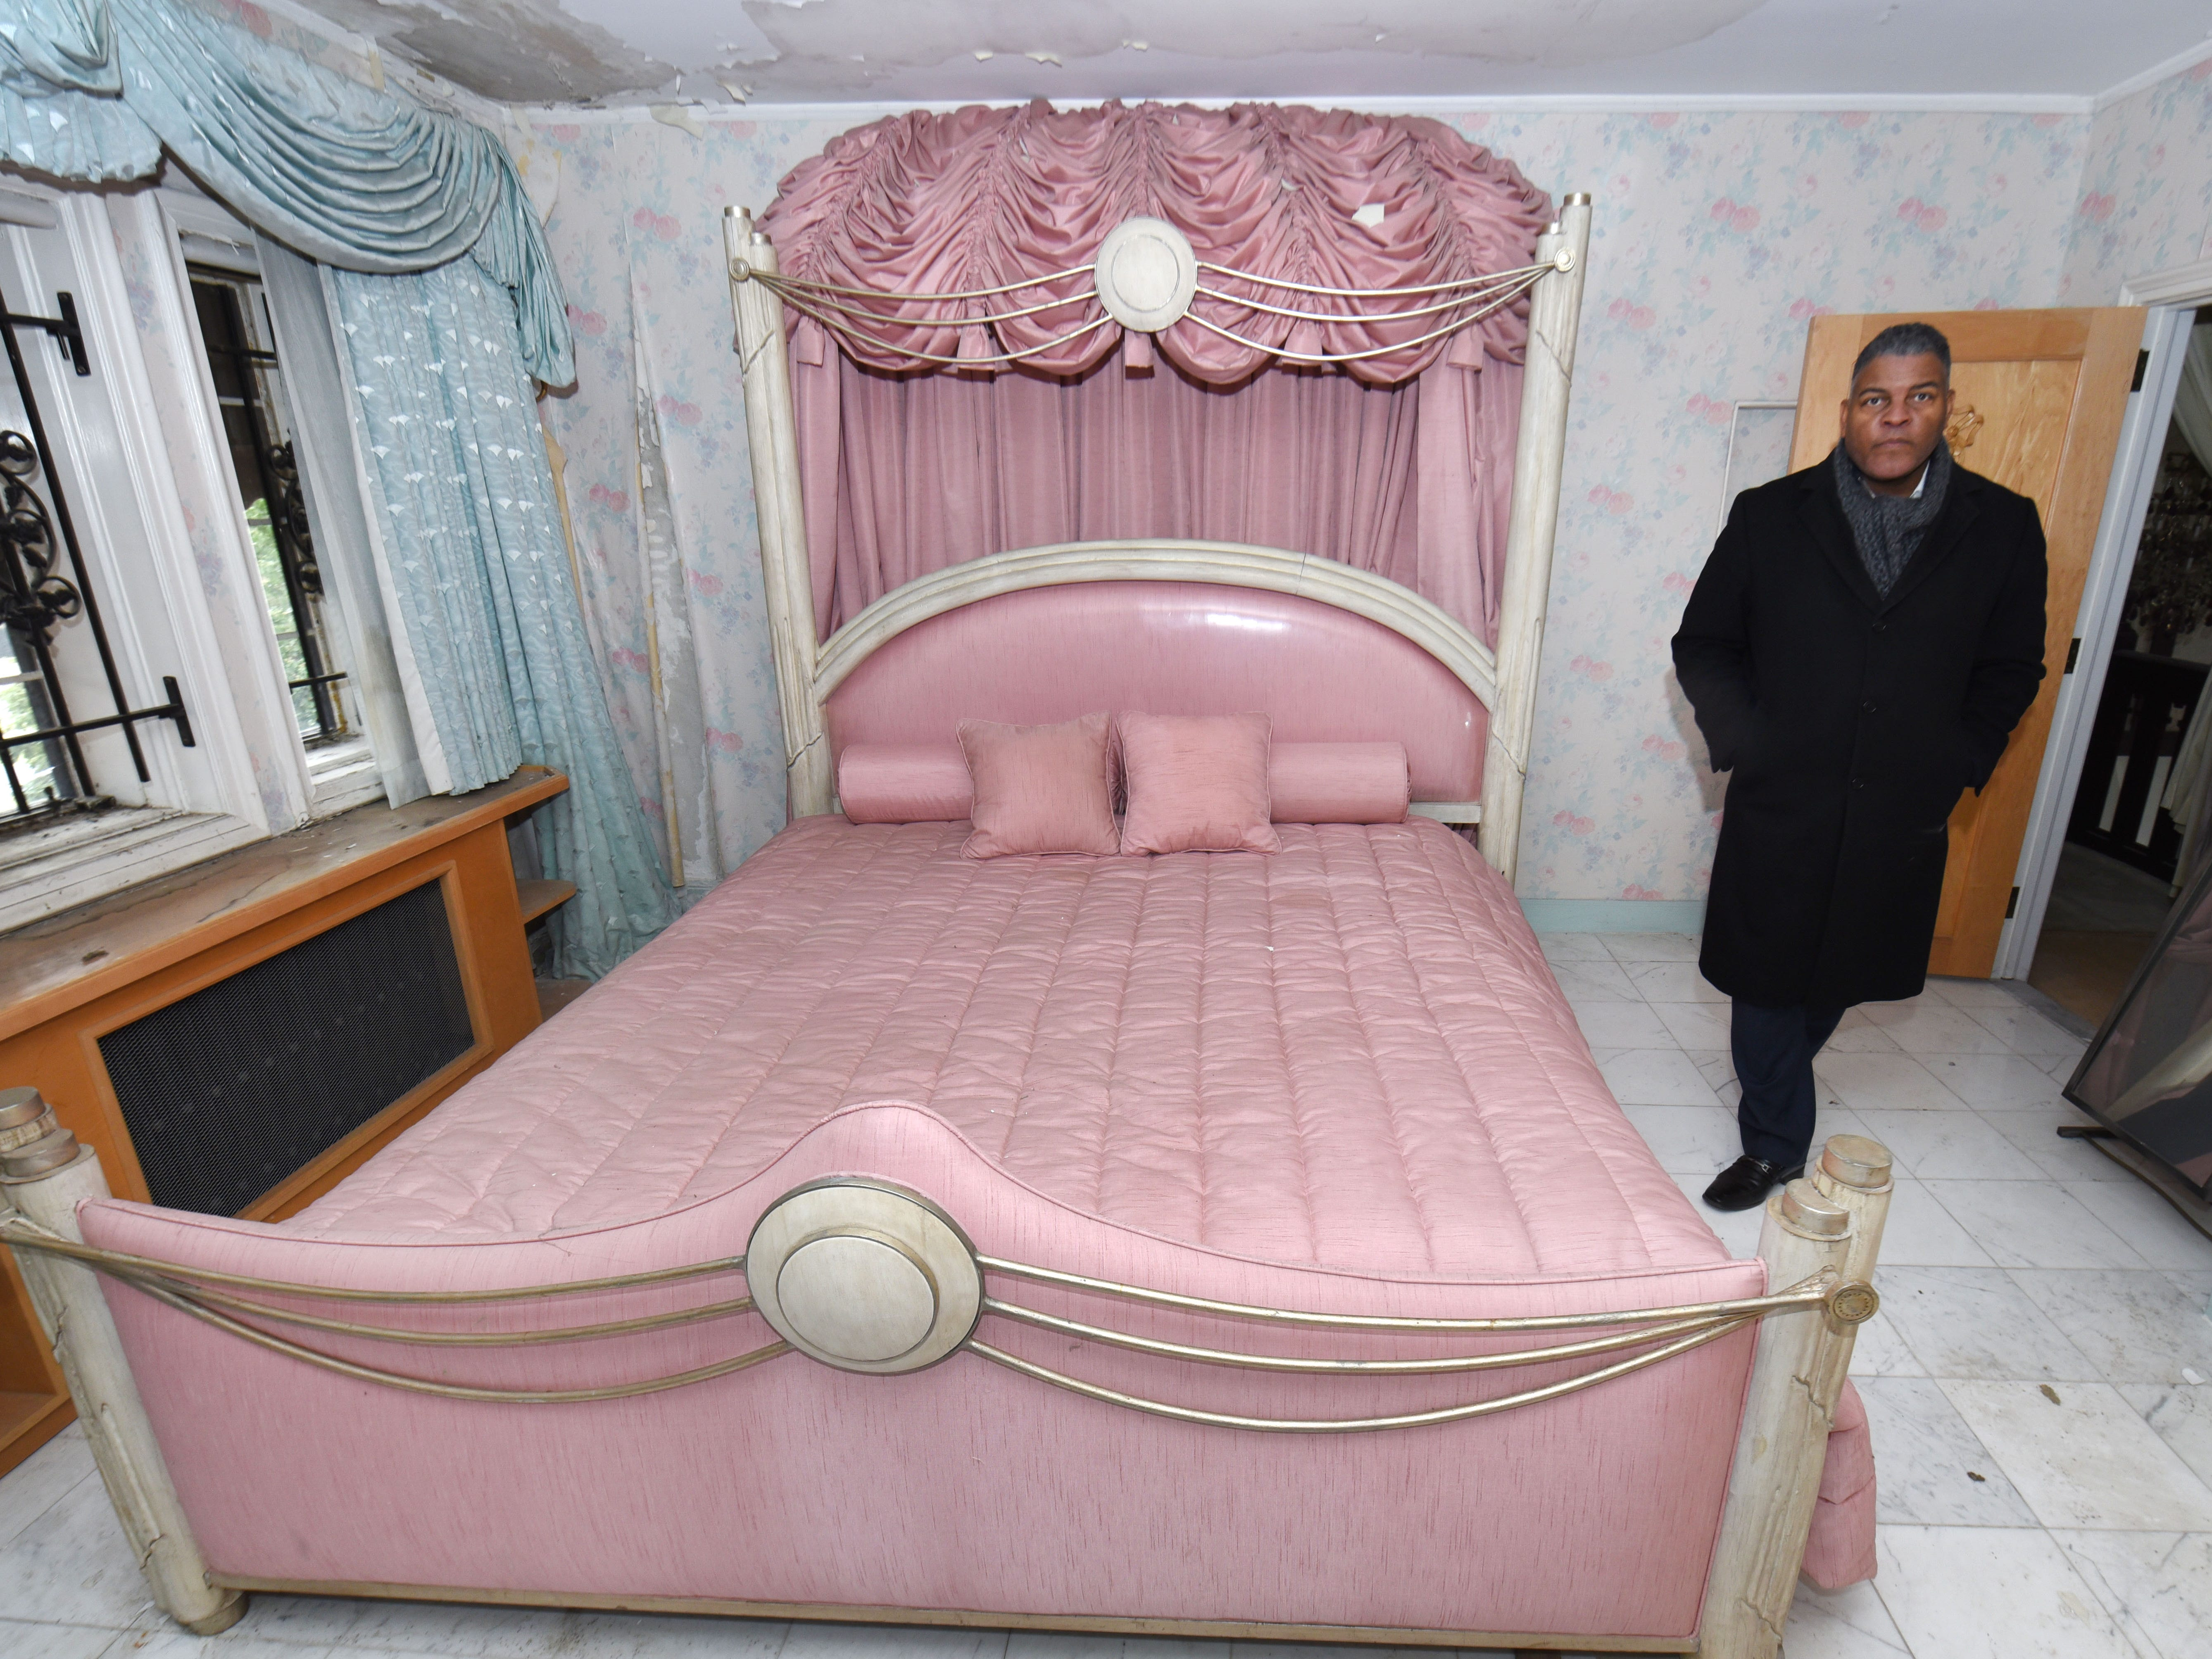 Anthony O. Kellum, president of Kellum Mortgage, stands in the former bedroom of Aretha Franklin, decorated in pink.